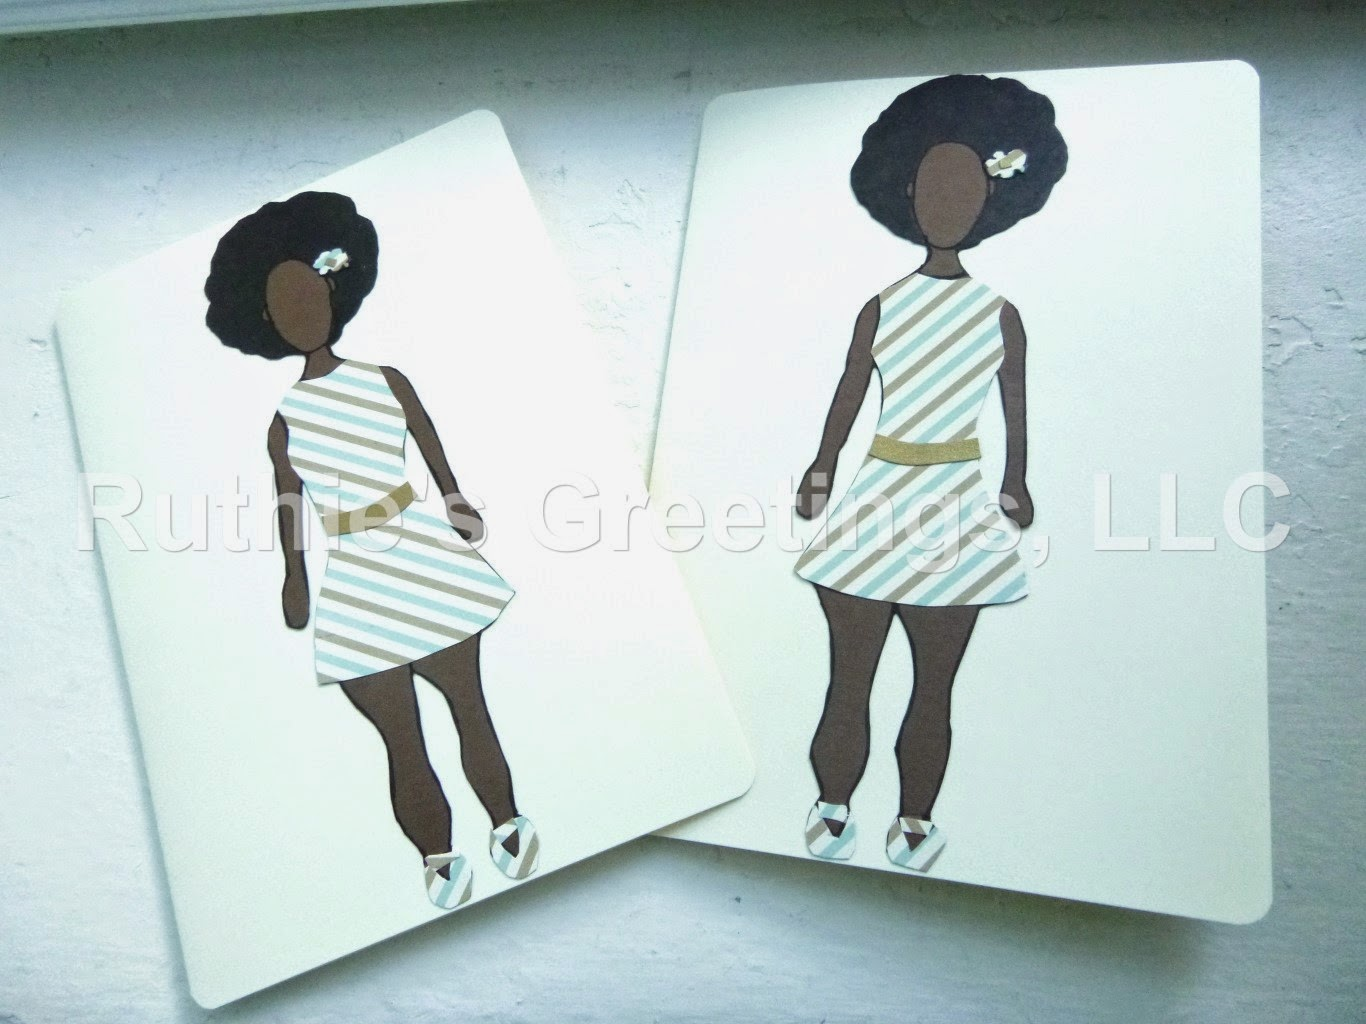 Single braids double twisted bun and my new greeting cards fraternal twins afro style greeting cards from the ruthies greetings etsy shop kristyandbryce Image collections